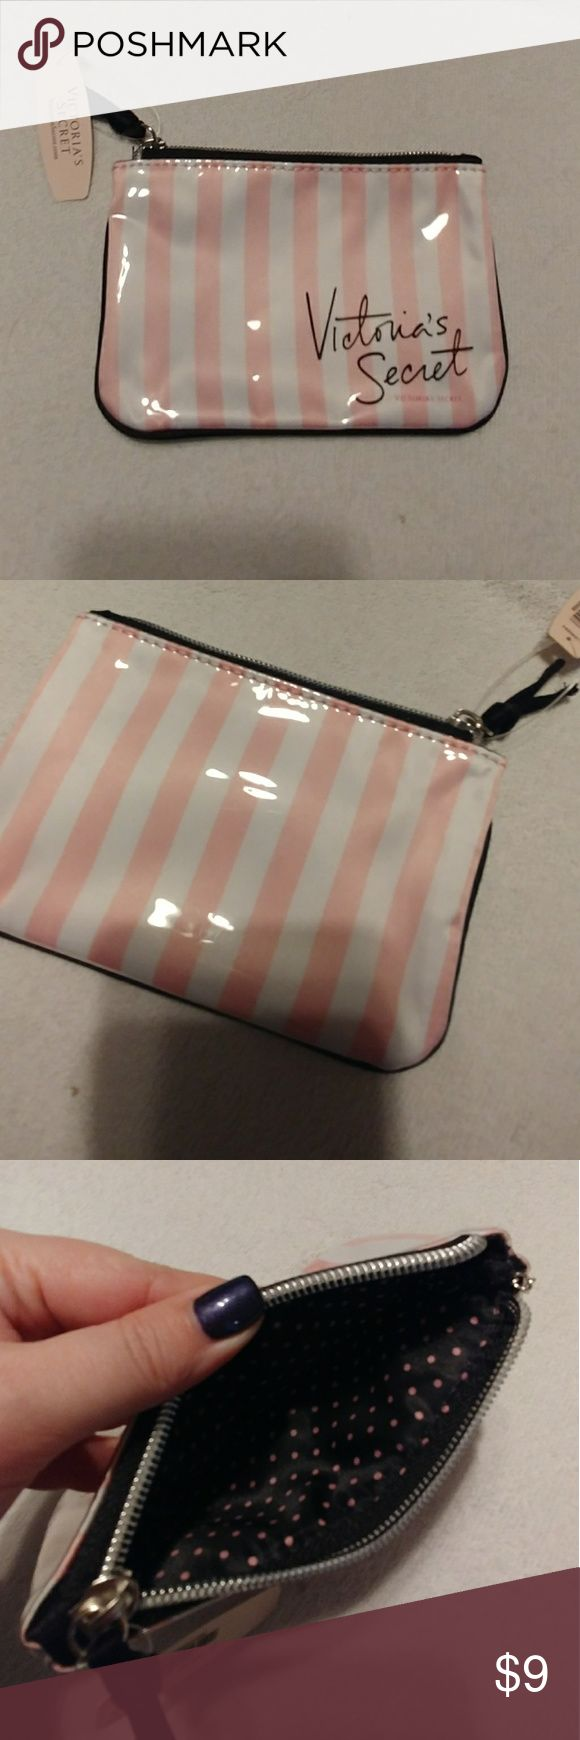 Victors Secret Wristlet Brand new with tags and never used. Pretty pink and white striped design. Perfect size for cards, cash, lip gloss and id.  It has a key chain link for keys too. Victoria's Secret Bags Clutches & Wristlets